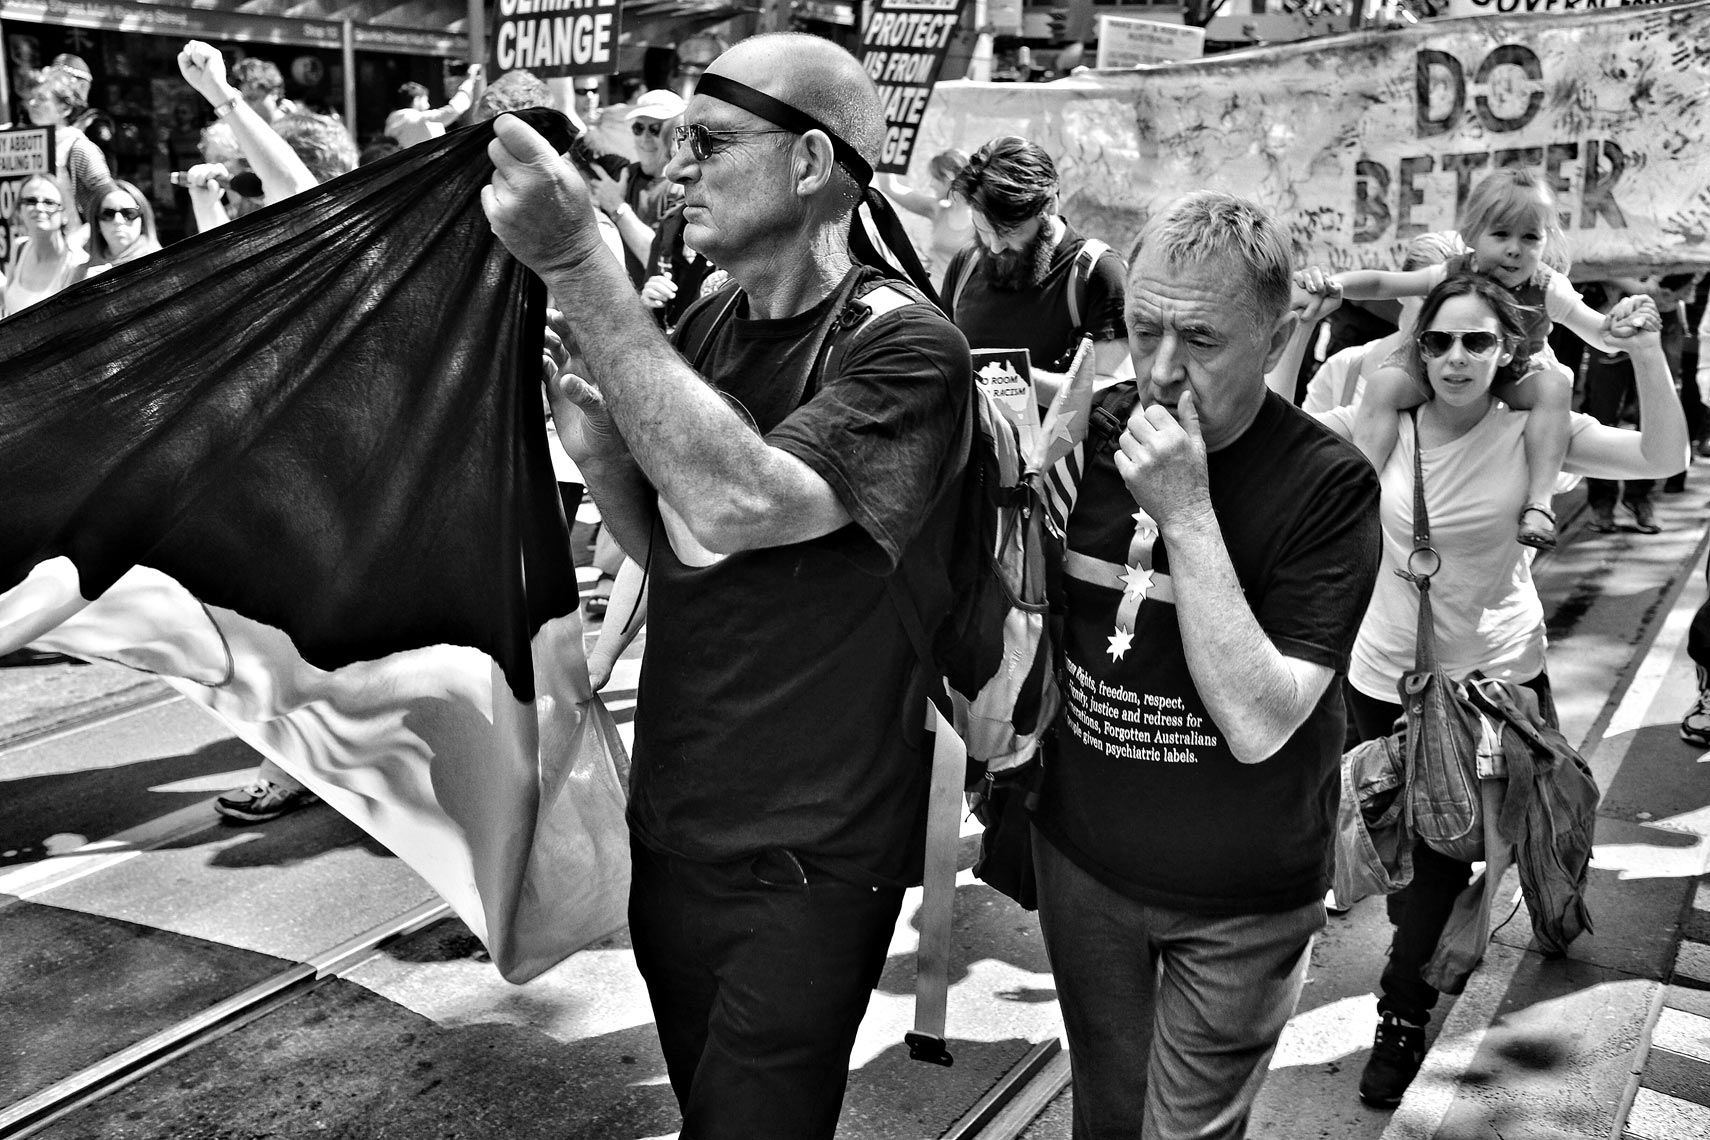 March in March Street portrait photography by Shane Nagle: March in March, Melbourne